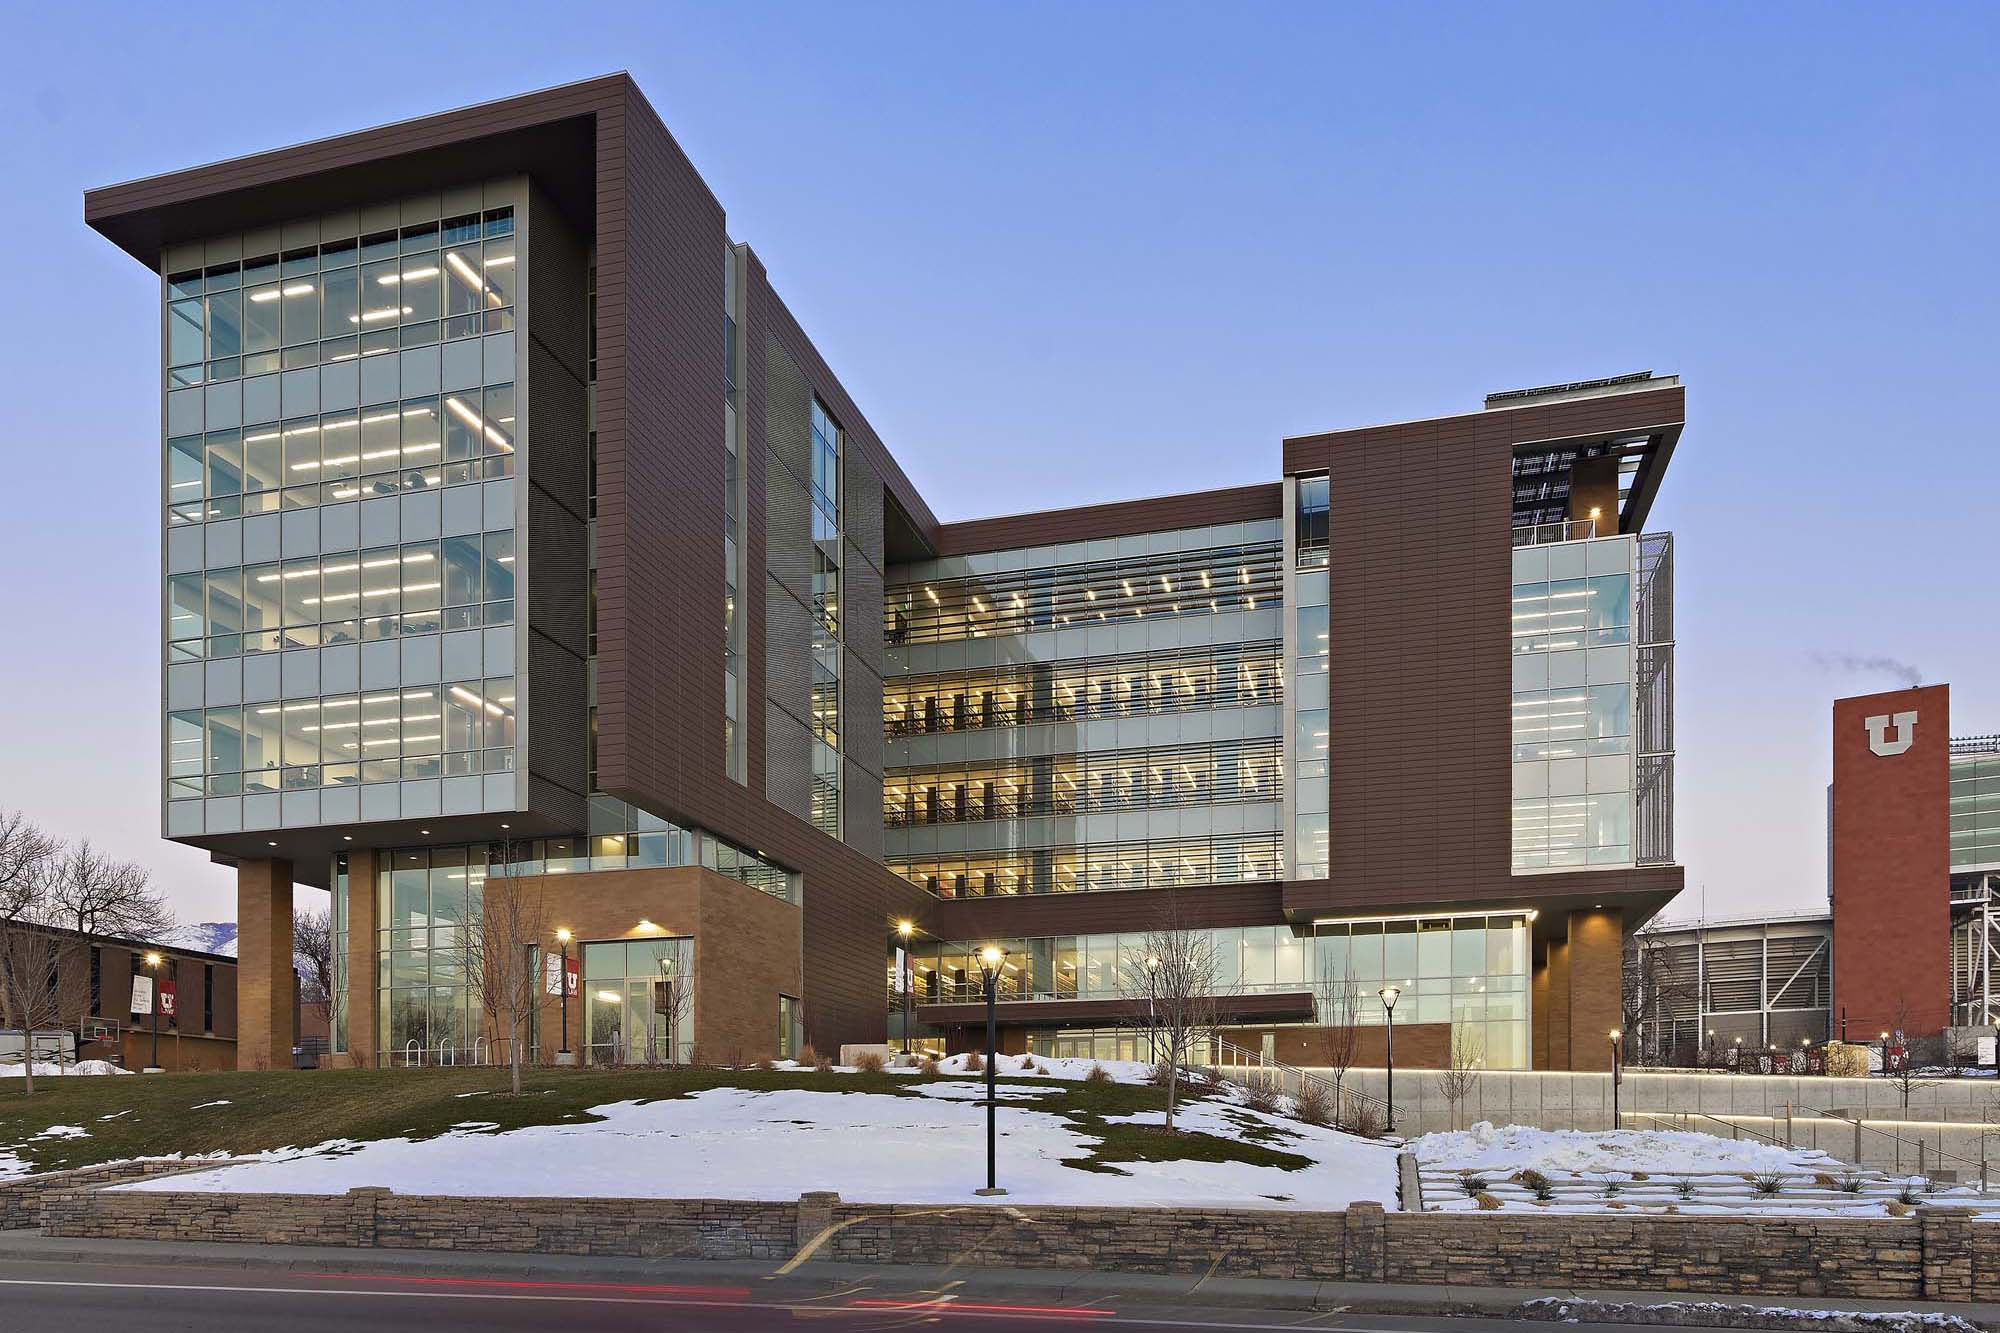 University of utah s j quinney college of law for Architecture firms salt lake city